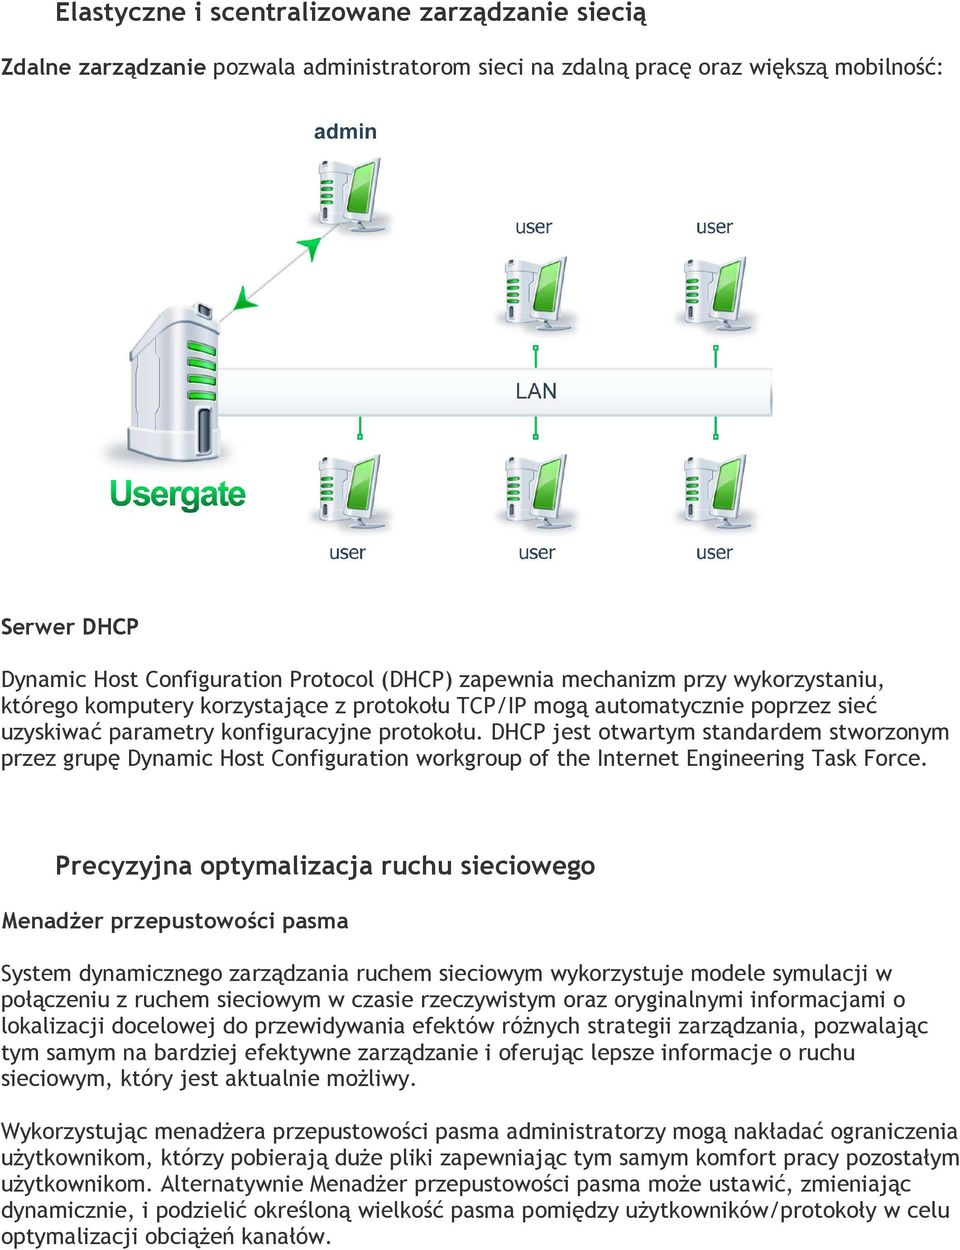 DHCP jest otwartym standardem stworzonym przez grupę Dynamic Host Configuration workgroup of the Internet Engineering Task Force.